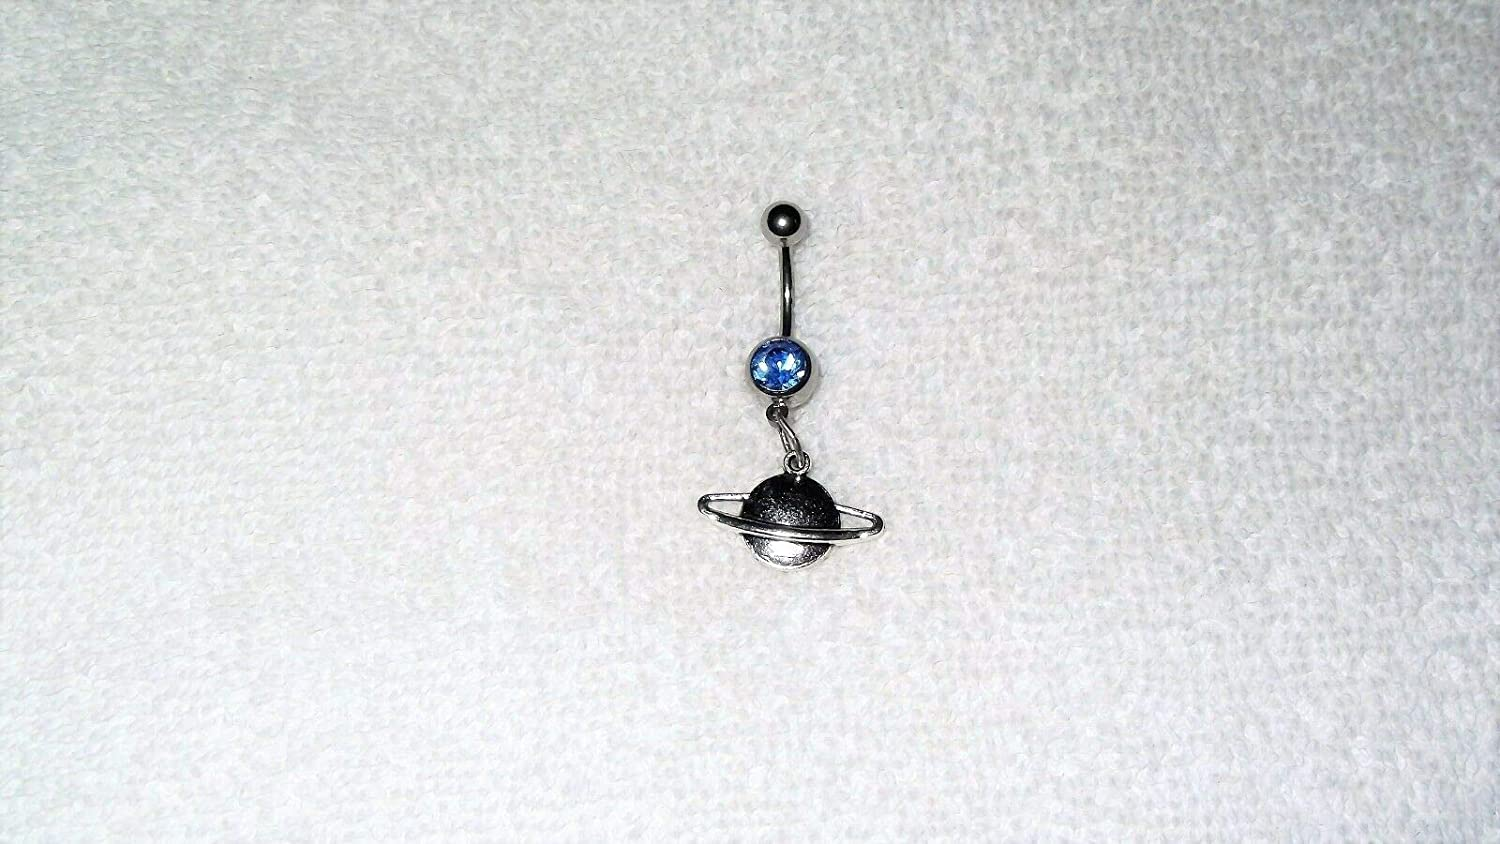 Planet Saturn Rings Universe Charm Belly Navel Ring Body Jewelry Piercing 14g #IS-741